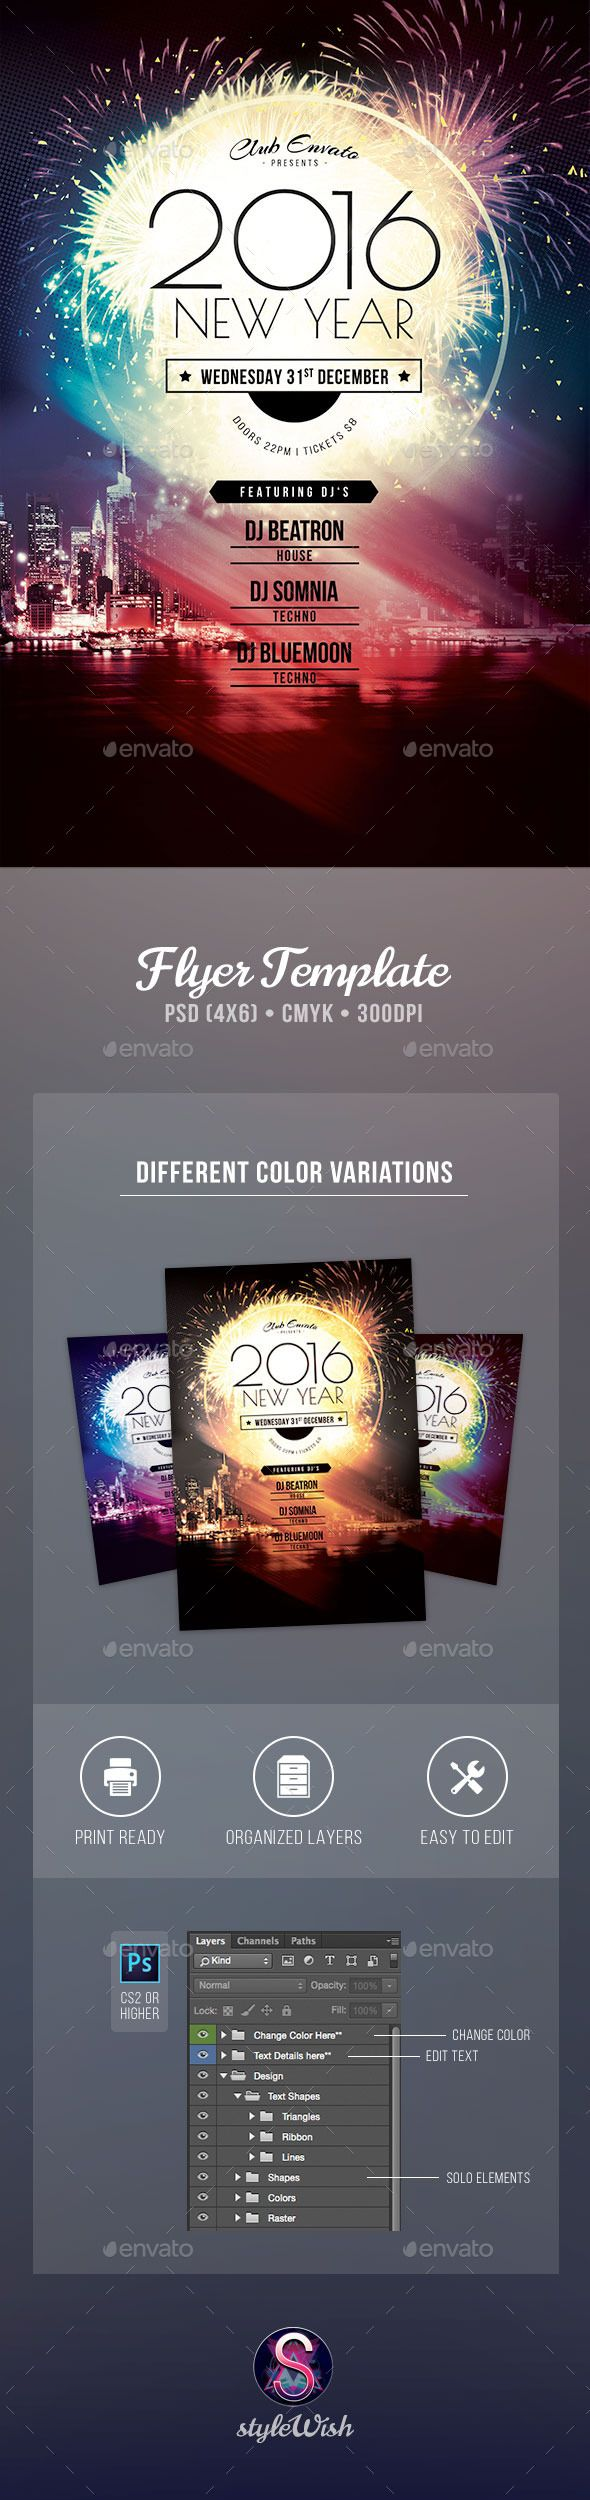 2016 New Year Flyer Template PSD #design #nye Download: http://graphicriver.net/item/2016-new-year-flyer/9689412?ref=ksioks